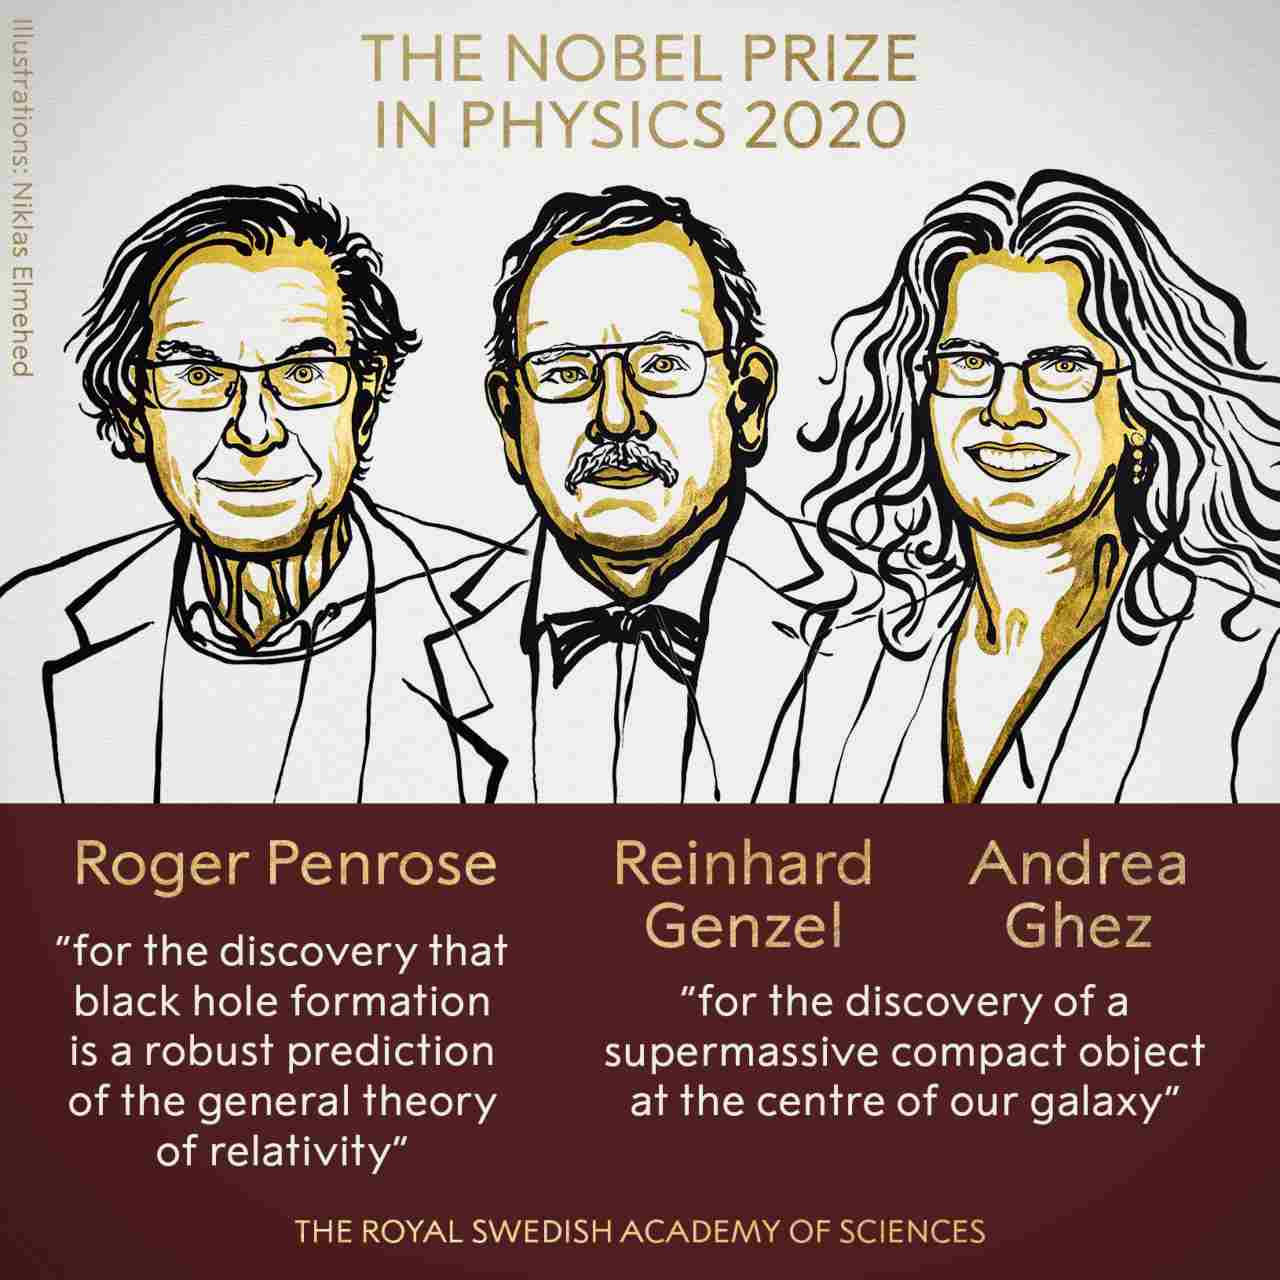 The Nobel Prize in Physics 2020